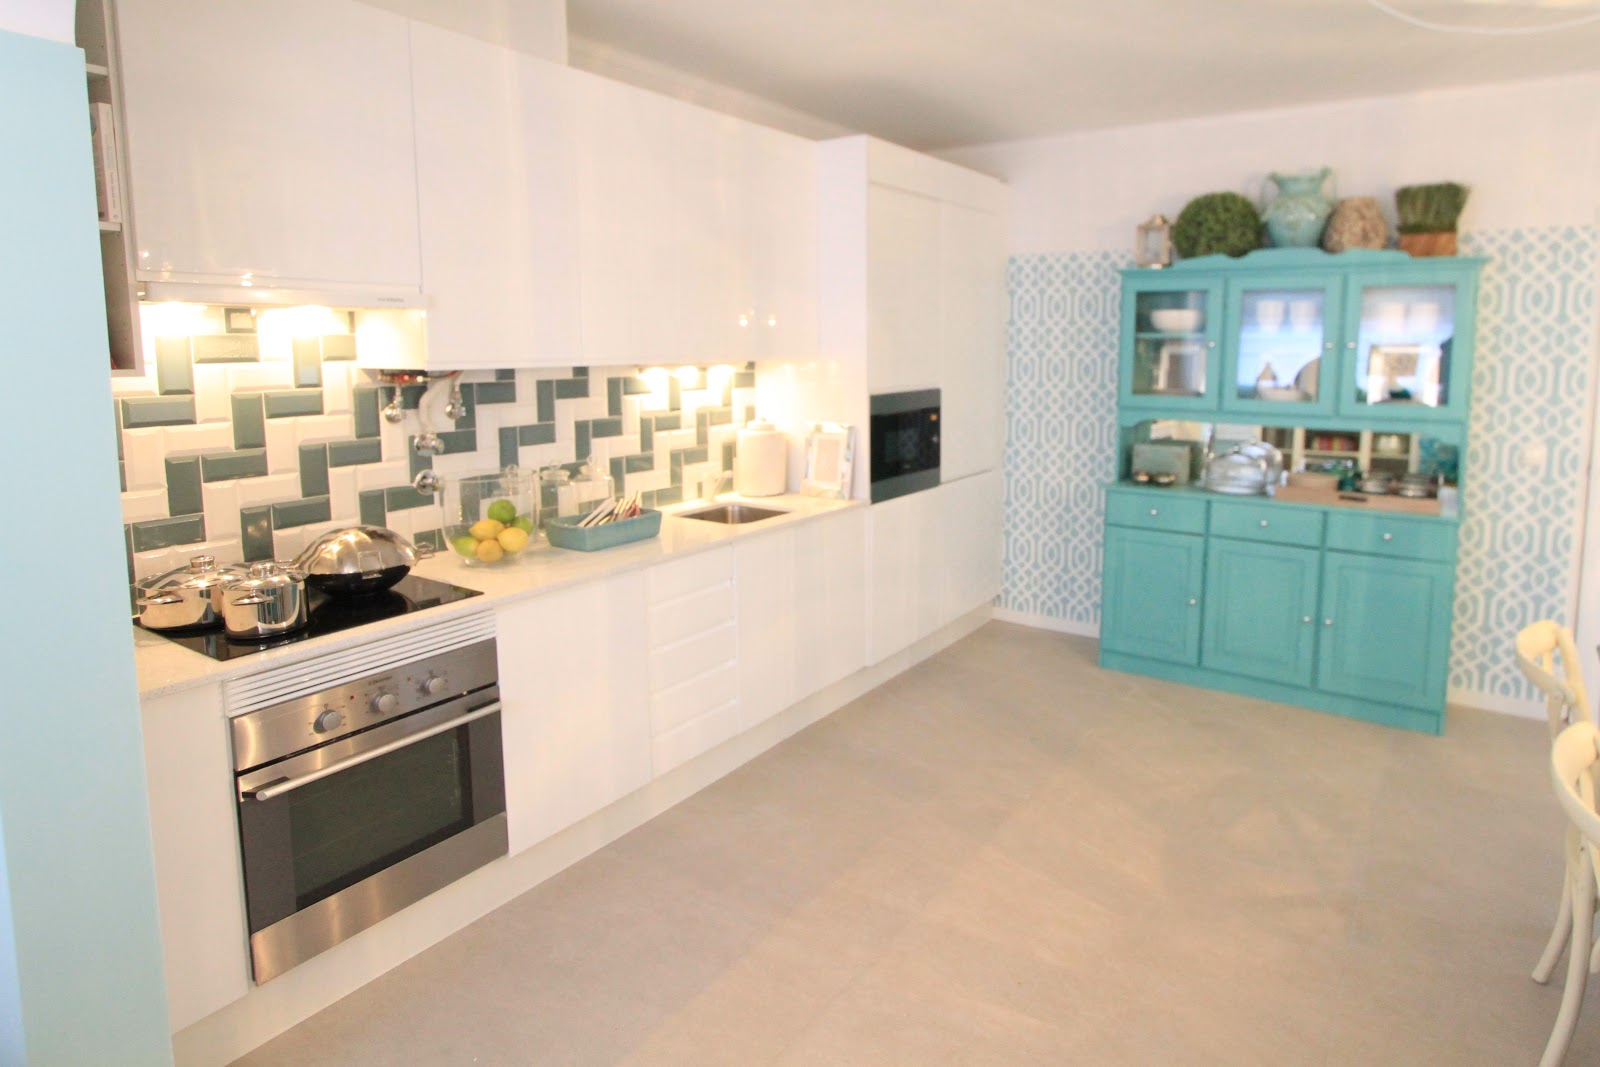 Home Styling  Querido Mudei a Casa Tv show Before and After